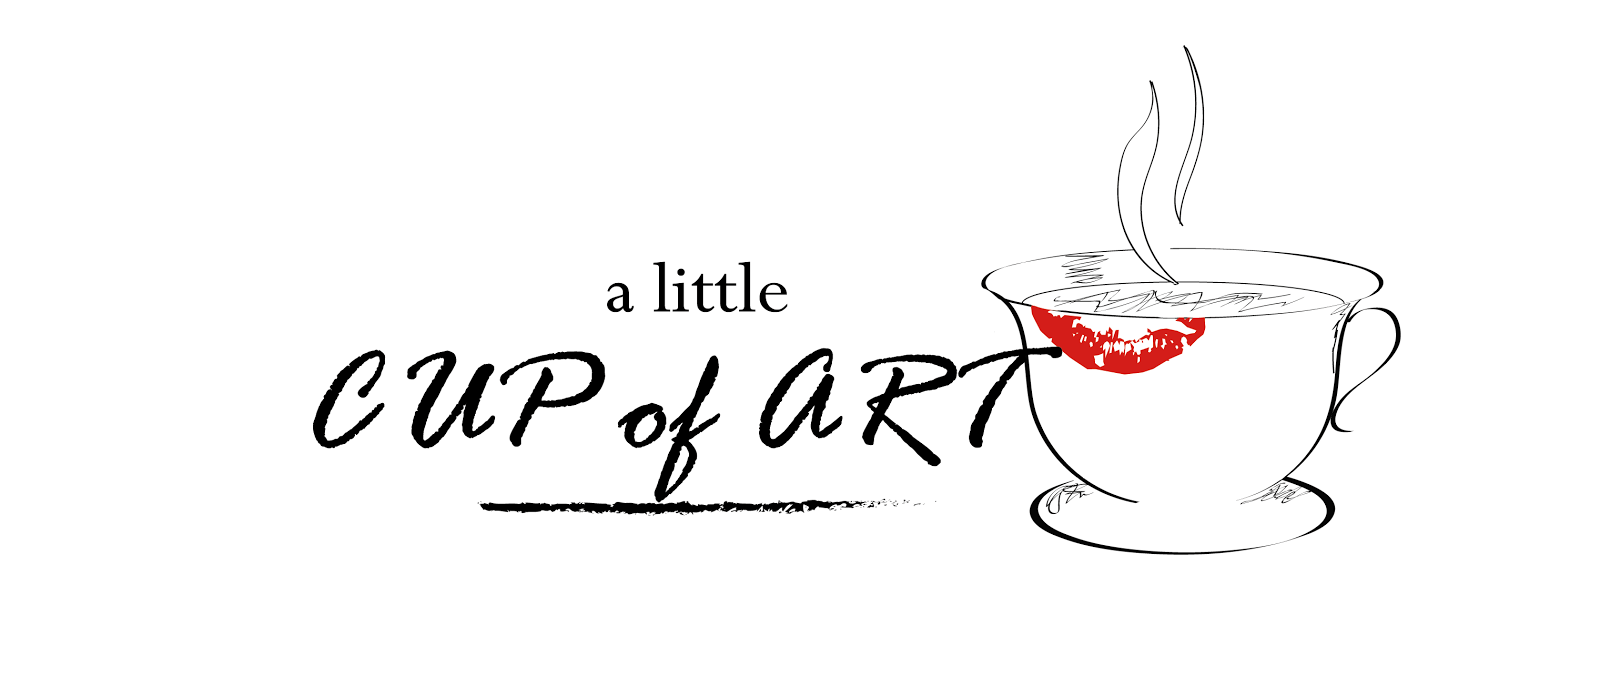 a little CUP OF ART